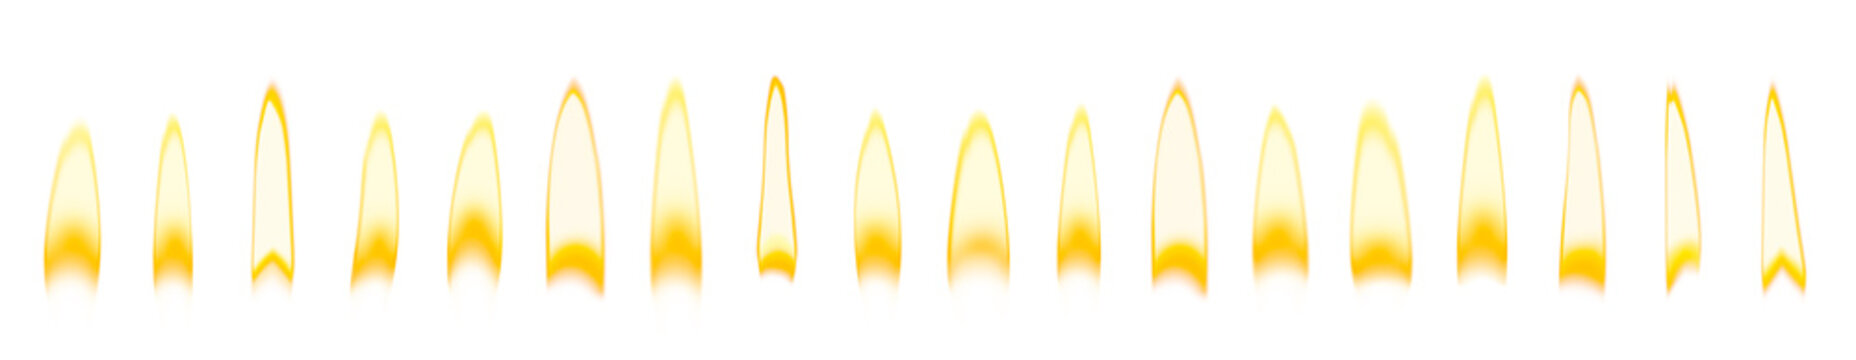 Set of different bright candle flames on white background. Banner design